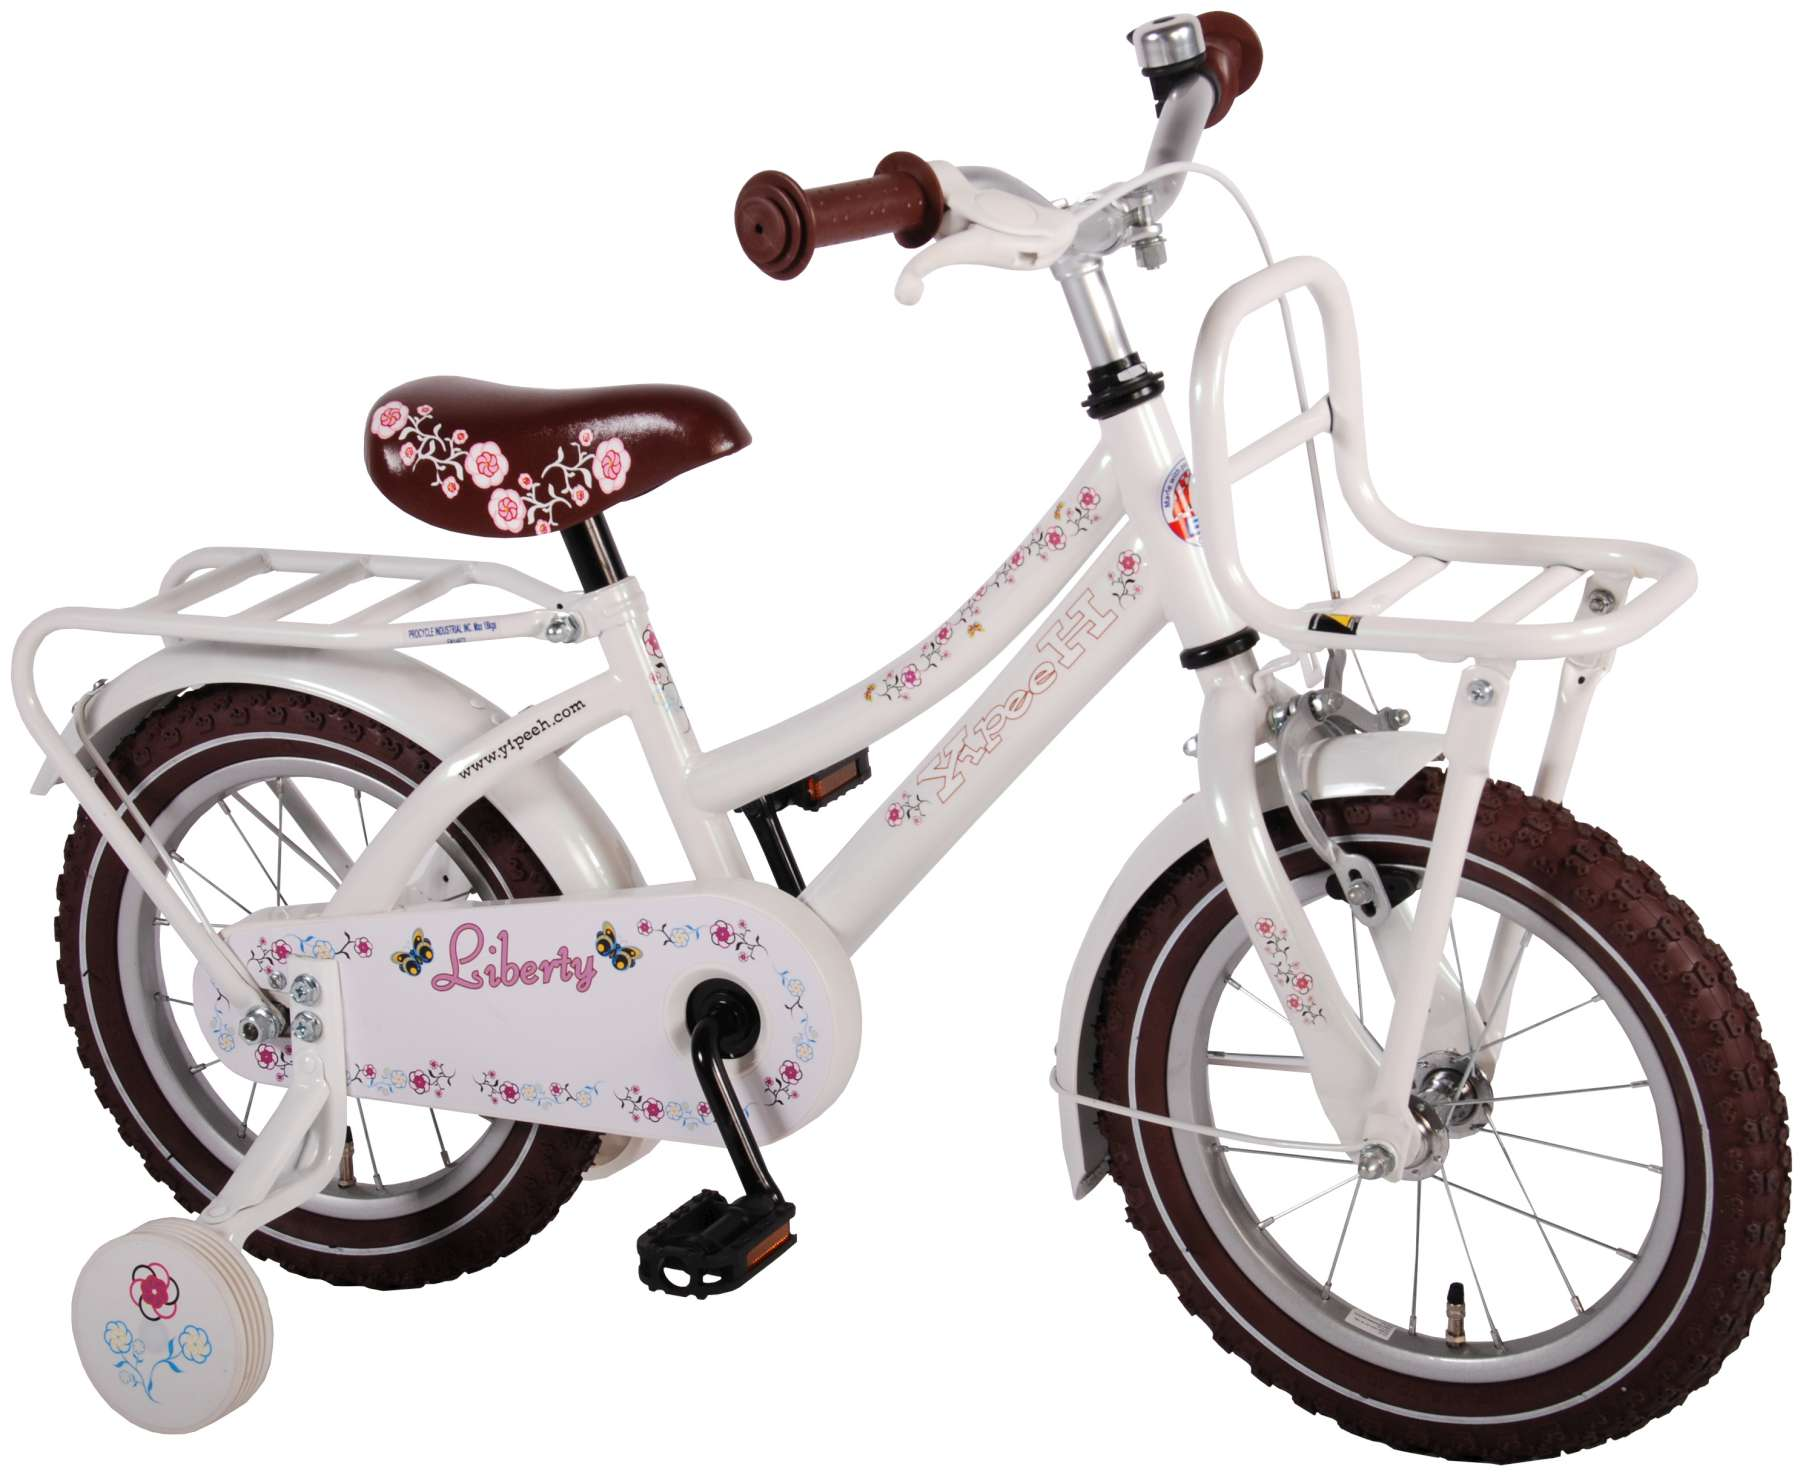 yipeeh liberty urban wei kinderfahrrad 14 zoll 95. Black Bedroom Furniture Sets. Home Design Ideas